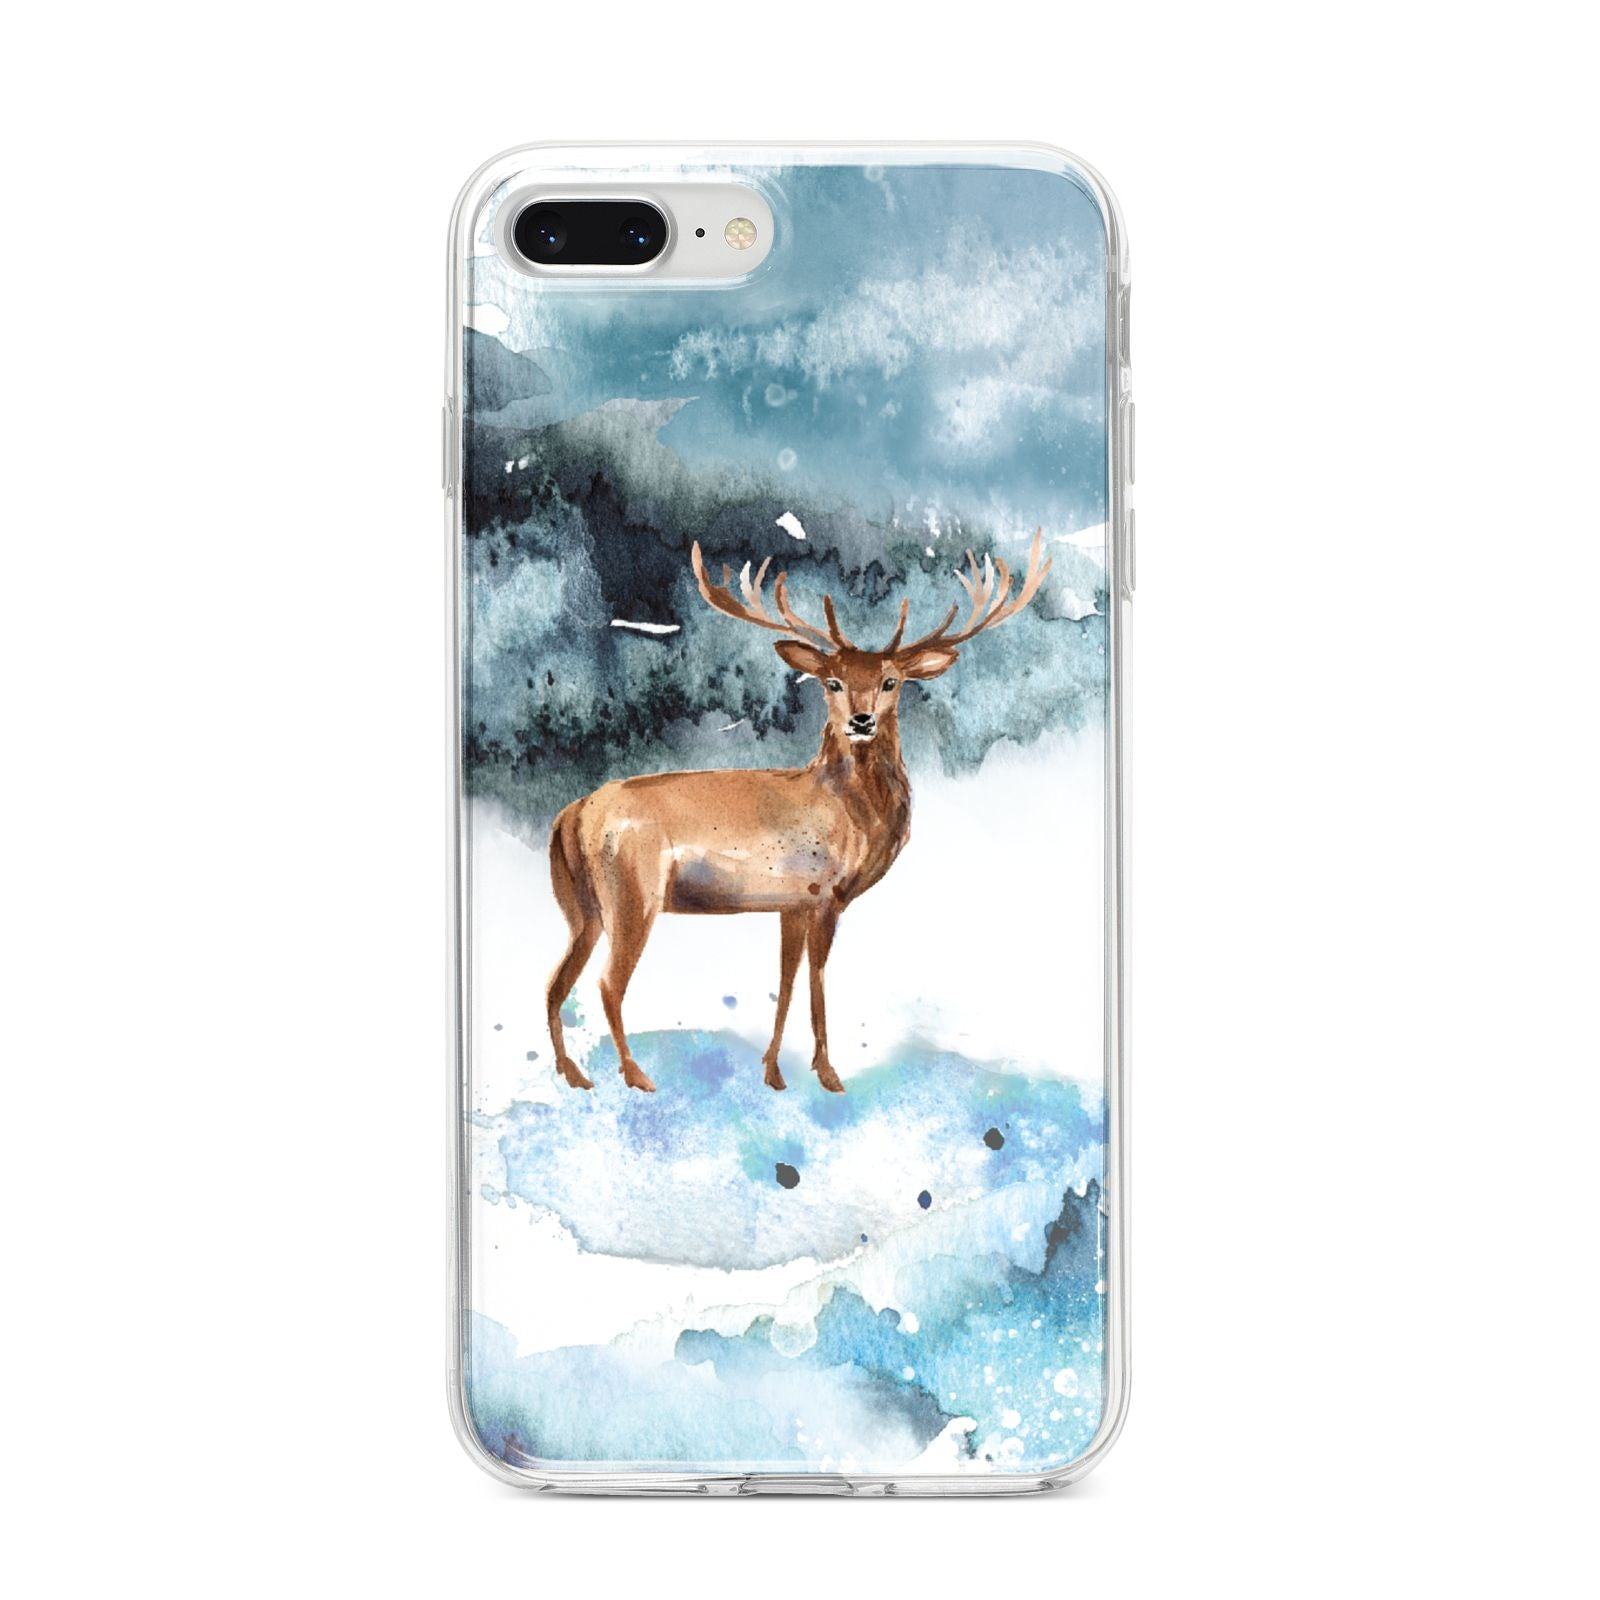 Christmas Winter Stag iPhone 8 Plus Bumper Case on Silver iPhone